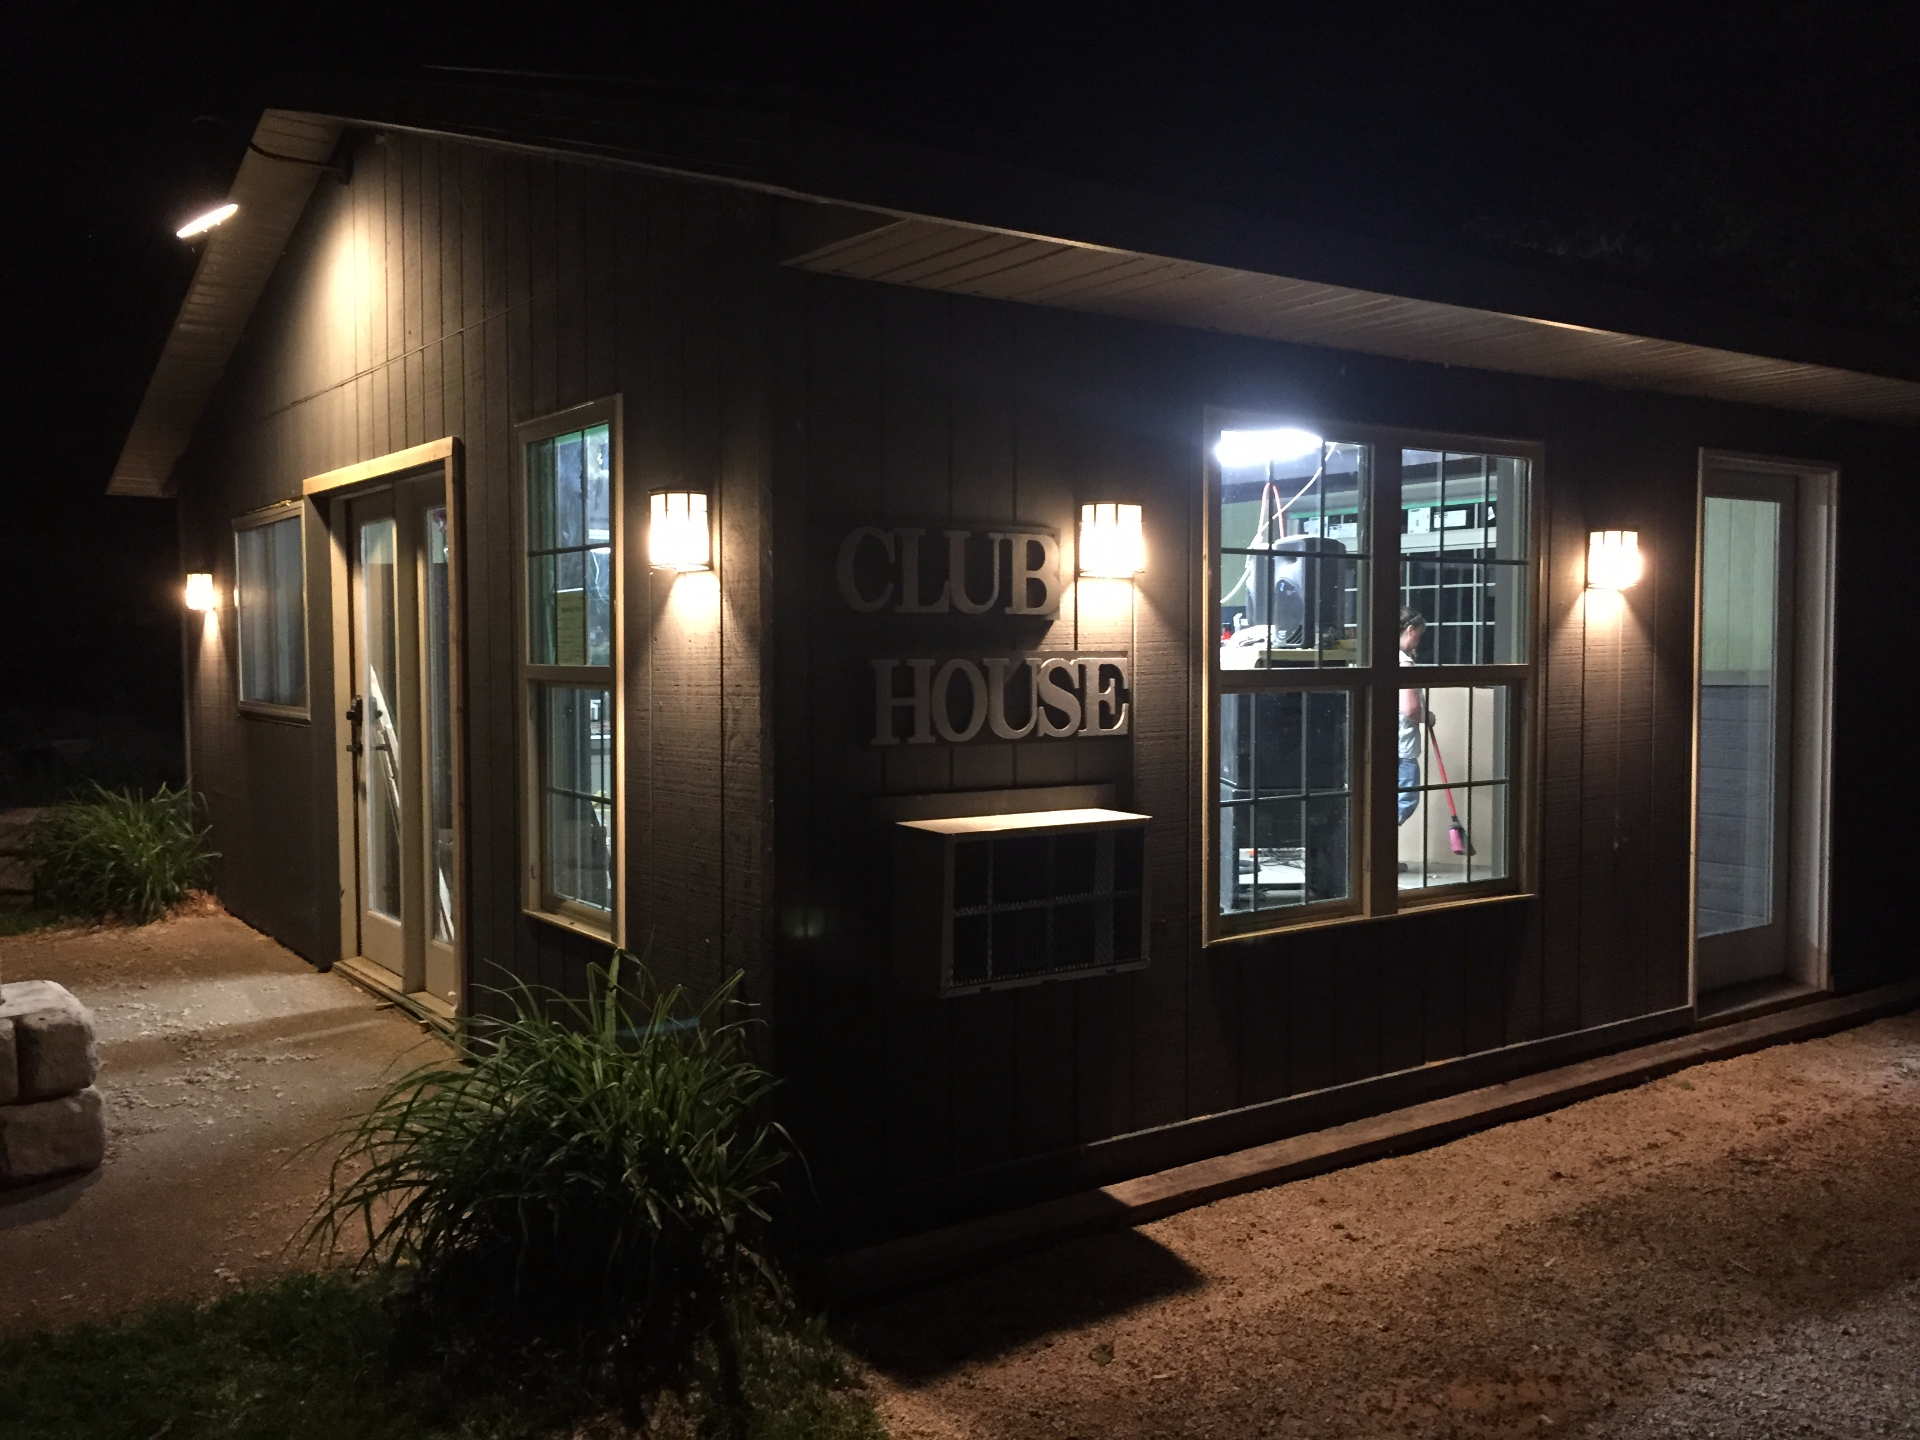 The Clubhouse after dark!